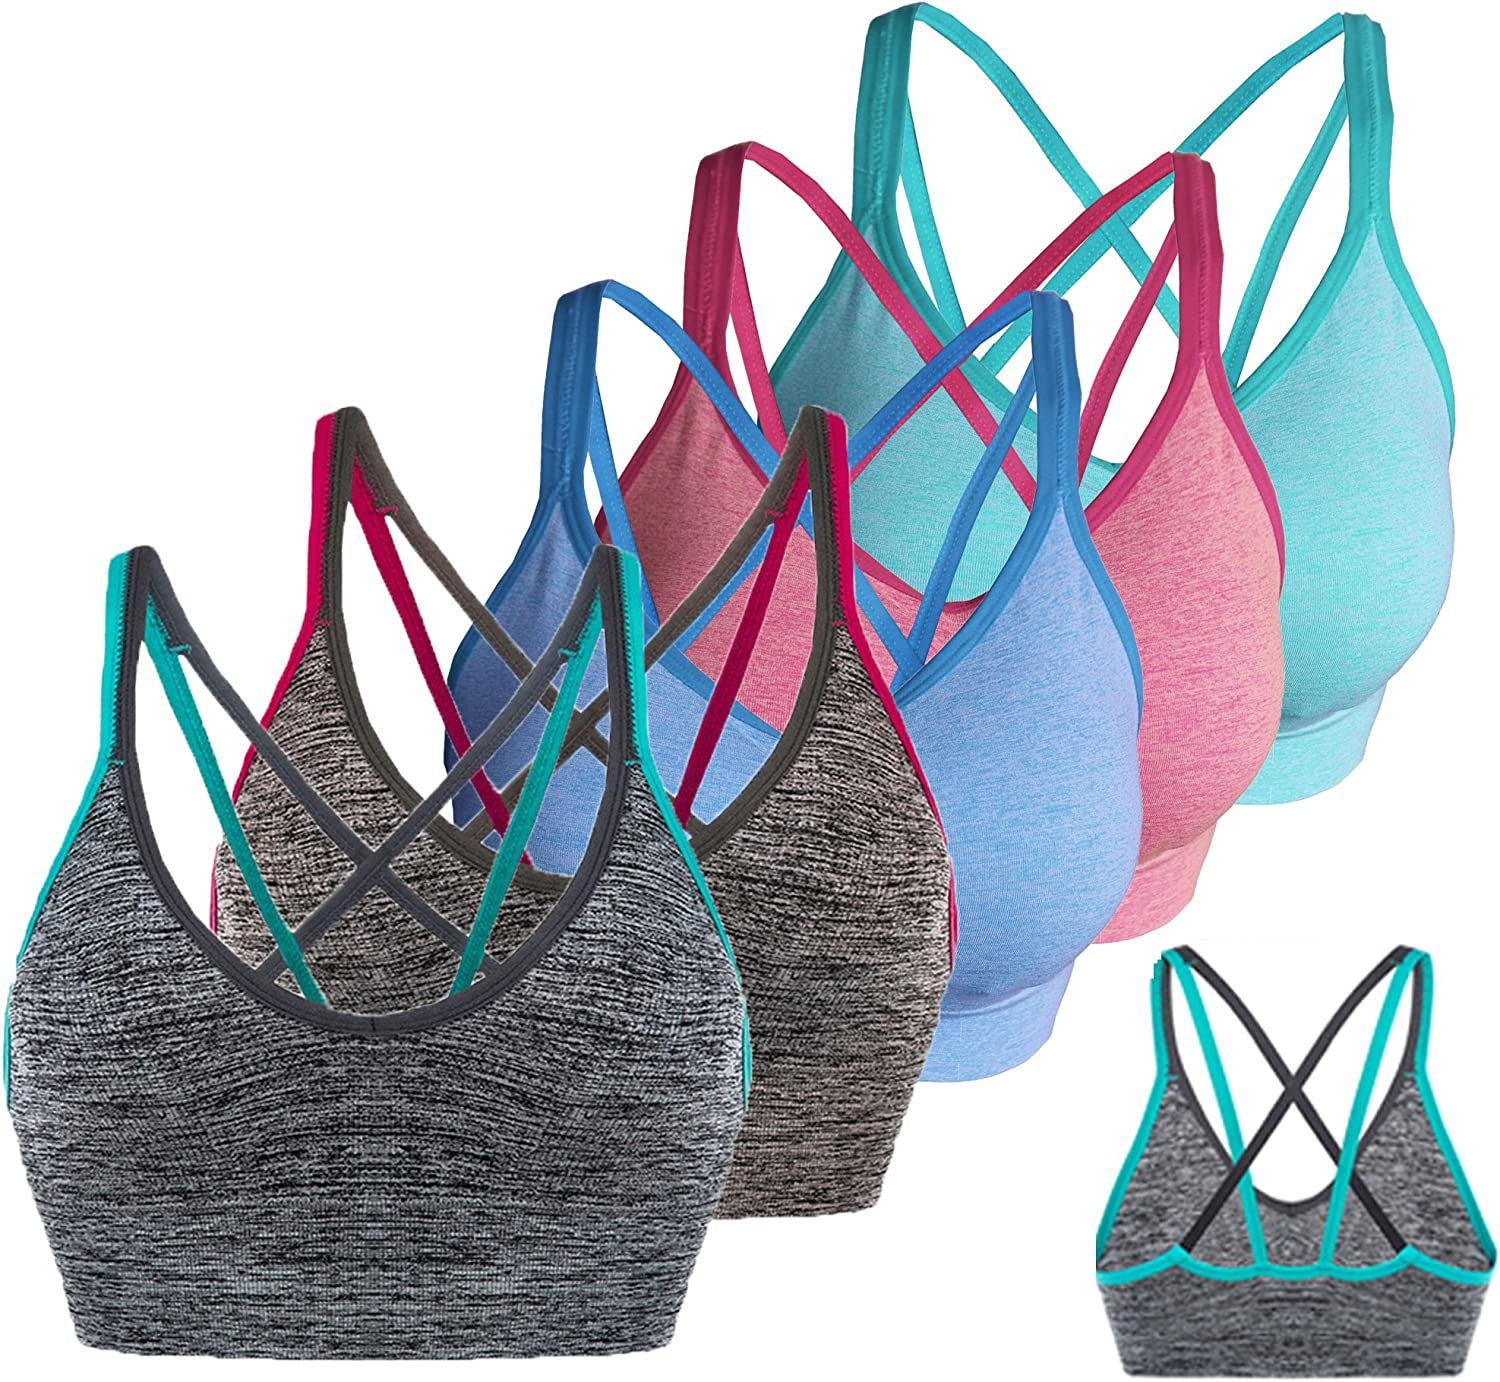 AKAMC 3 Pack Very popular! Women's Medium Wirefree Removabl Mail order Back Cross Support